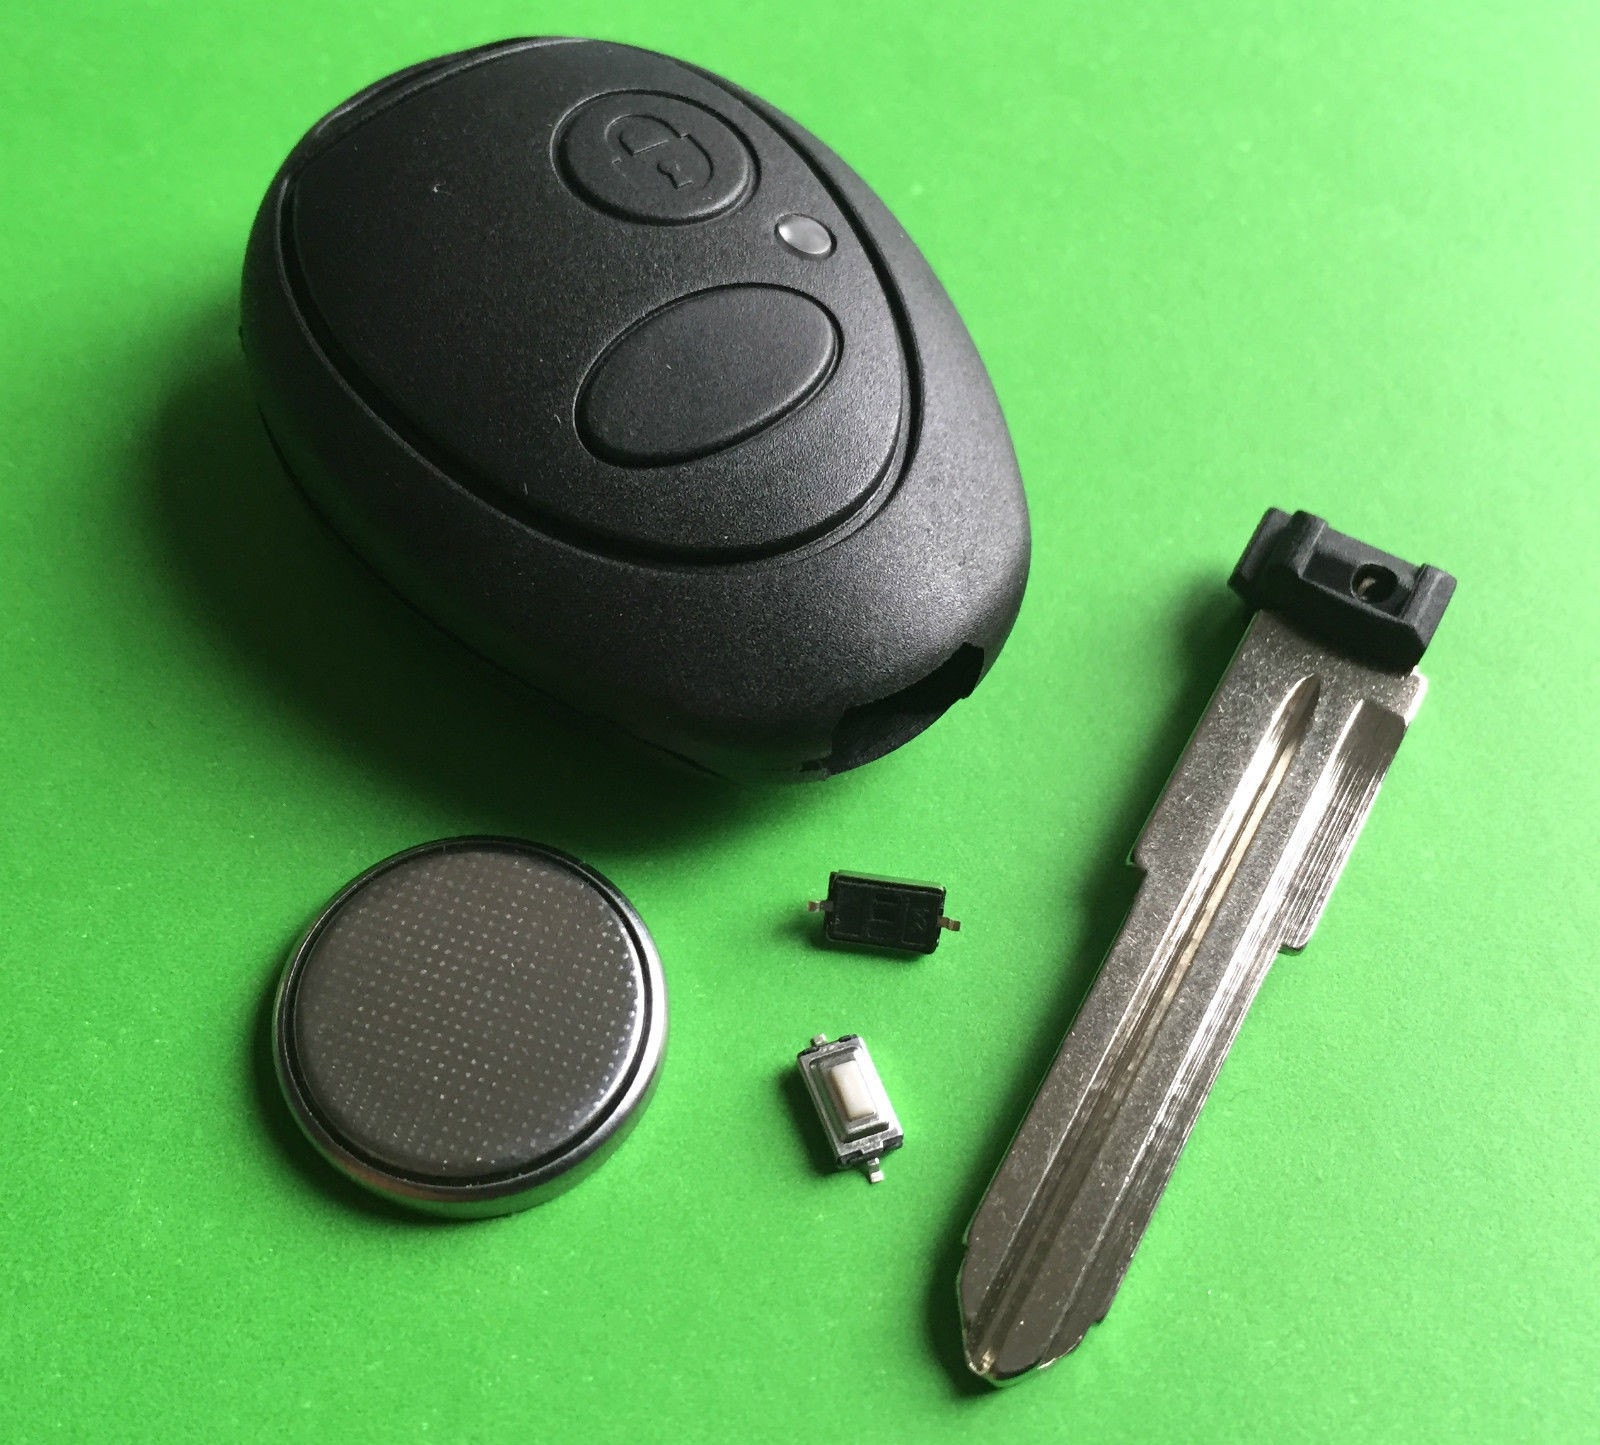 Repair Kit for Land Rover Discovery 2 button remote key